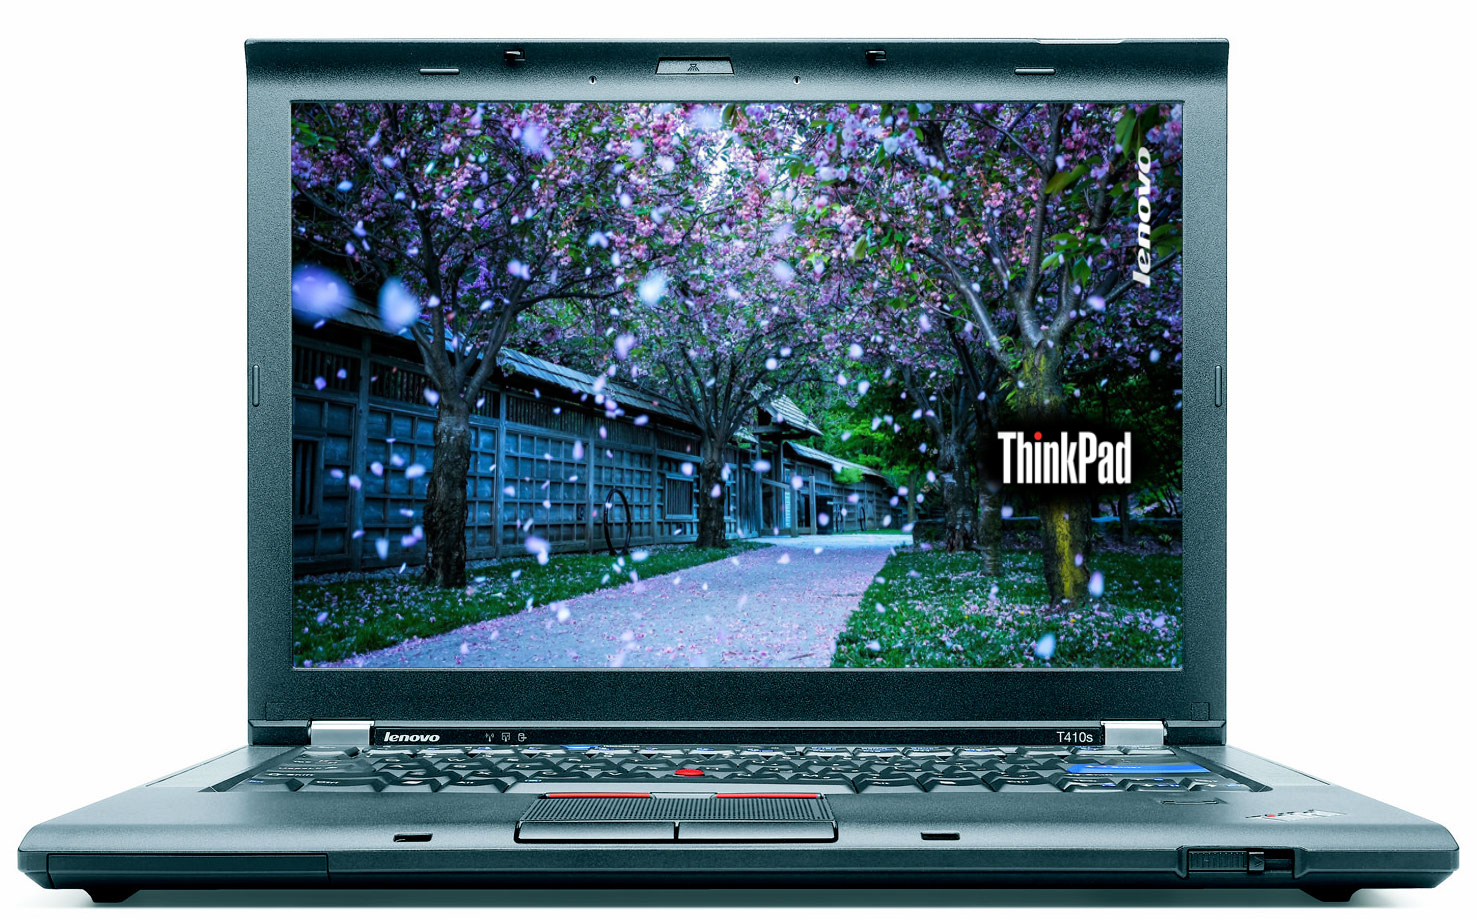 Lenovo ThinkPad T410S_1